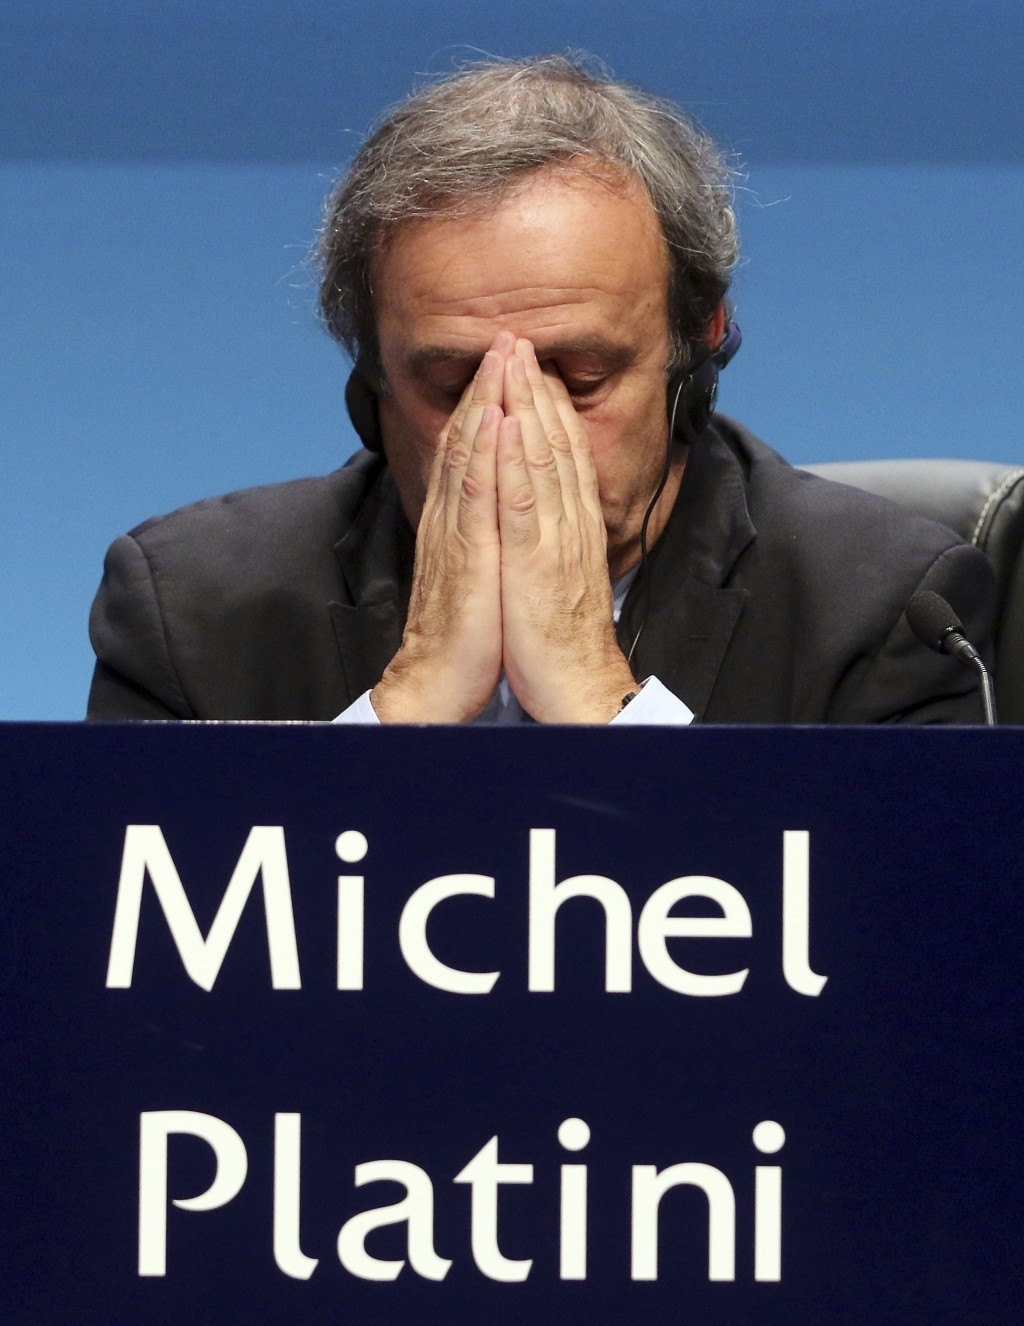 FILE - In this Tuesday, March 24, 2015 file photo UEFA President Michel Platini covers his face during a news conference at the end of the 39th Ordina